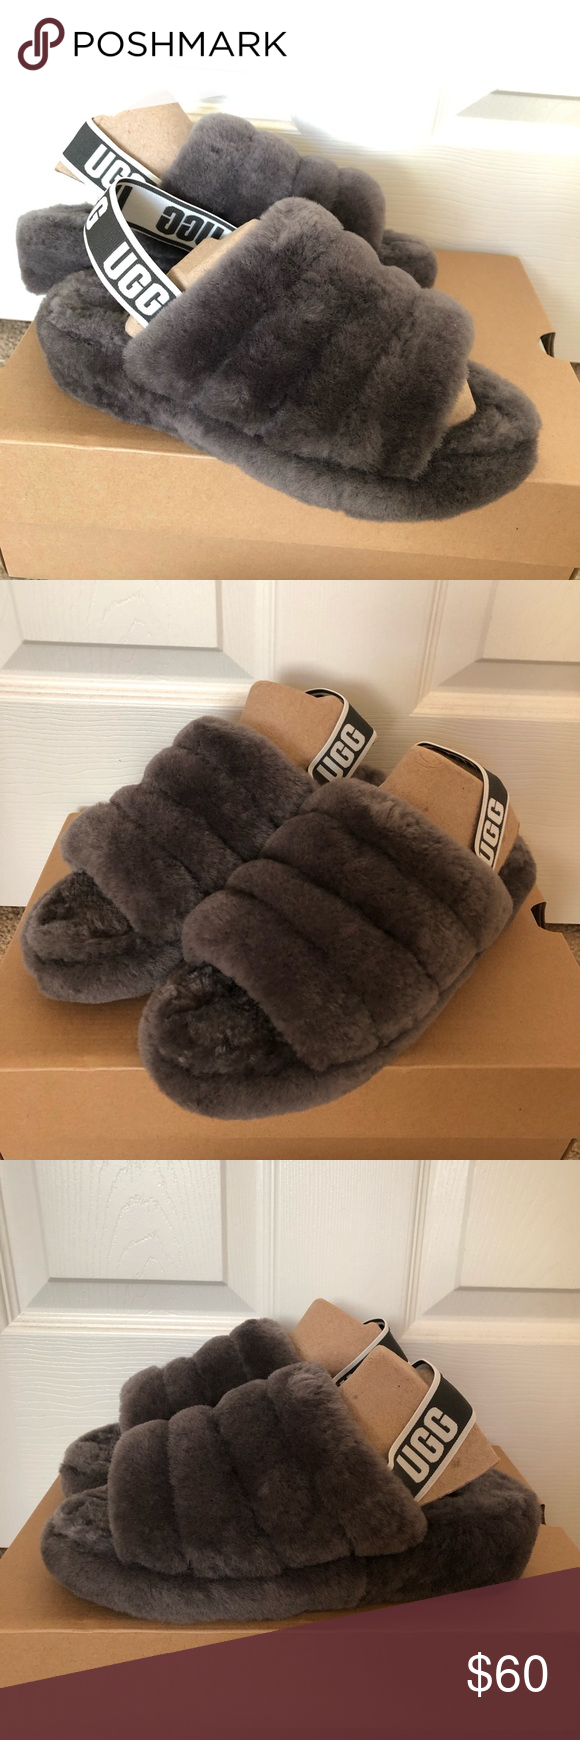 9302dddc456 UGG Fluff Yeah Slides Brand New These UGG slides are brand new in ...